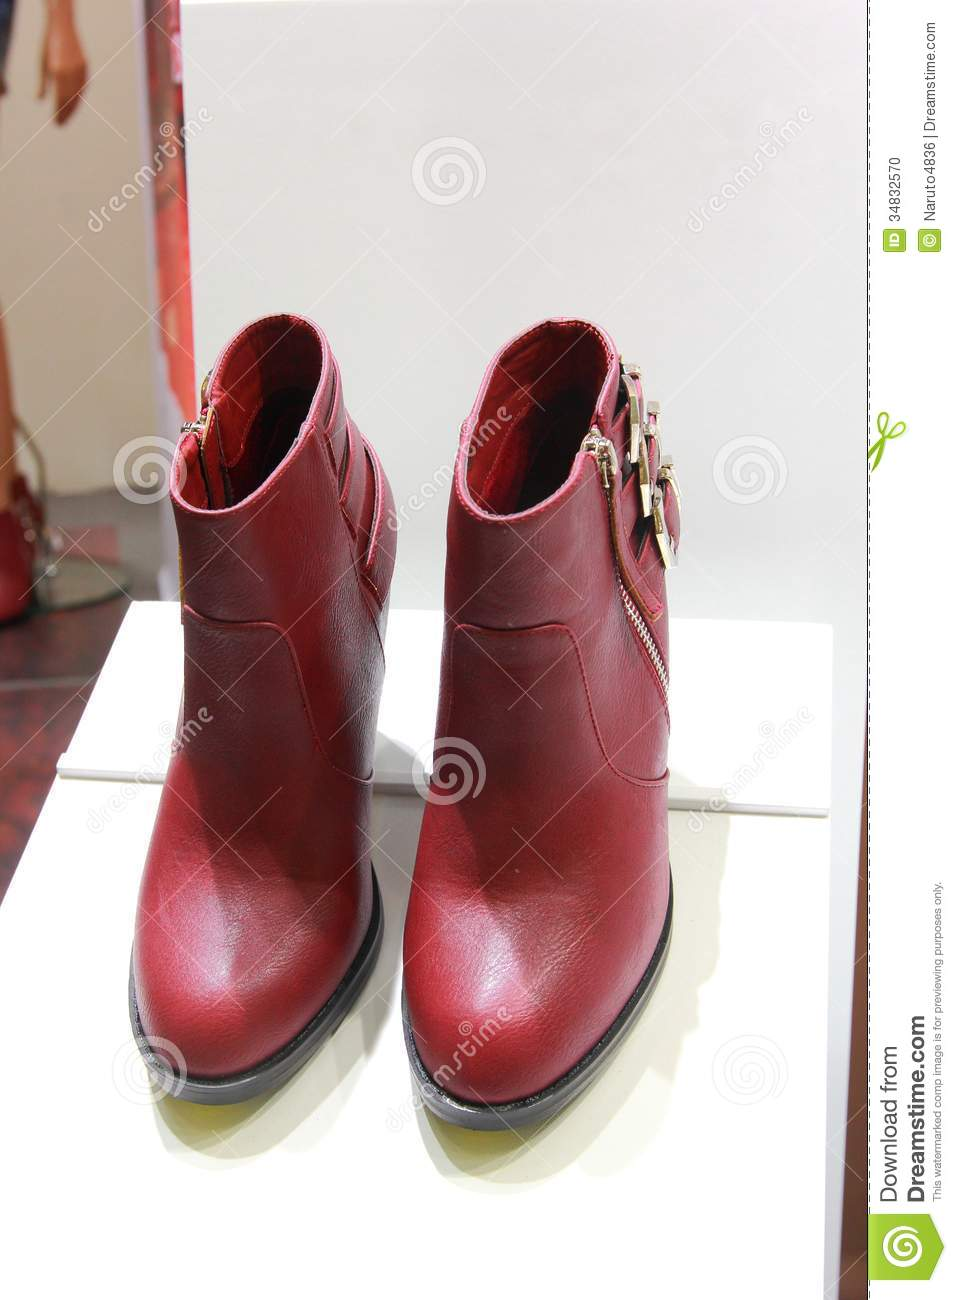 leather boots stock photo image 34832570